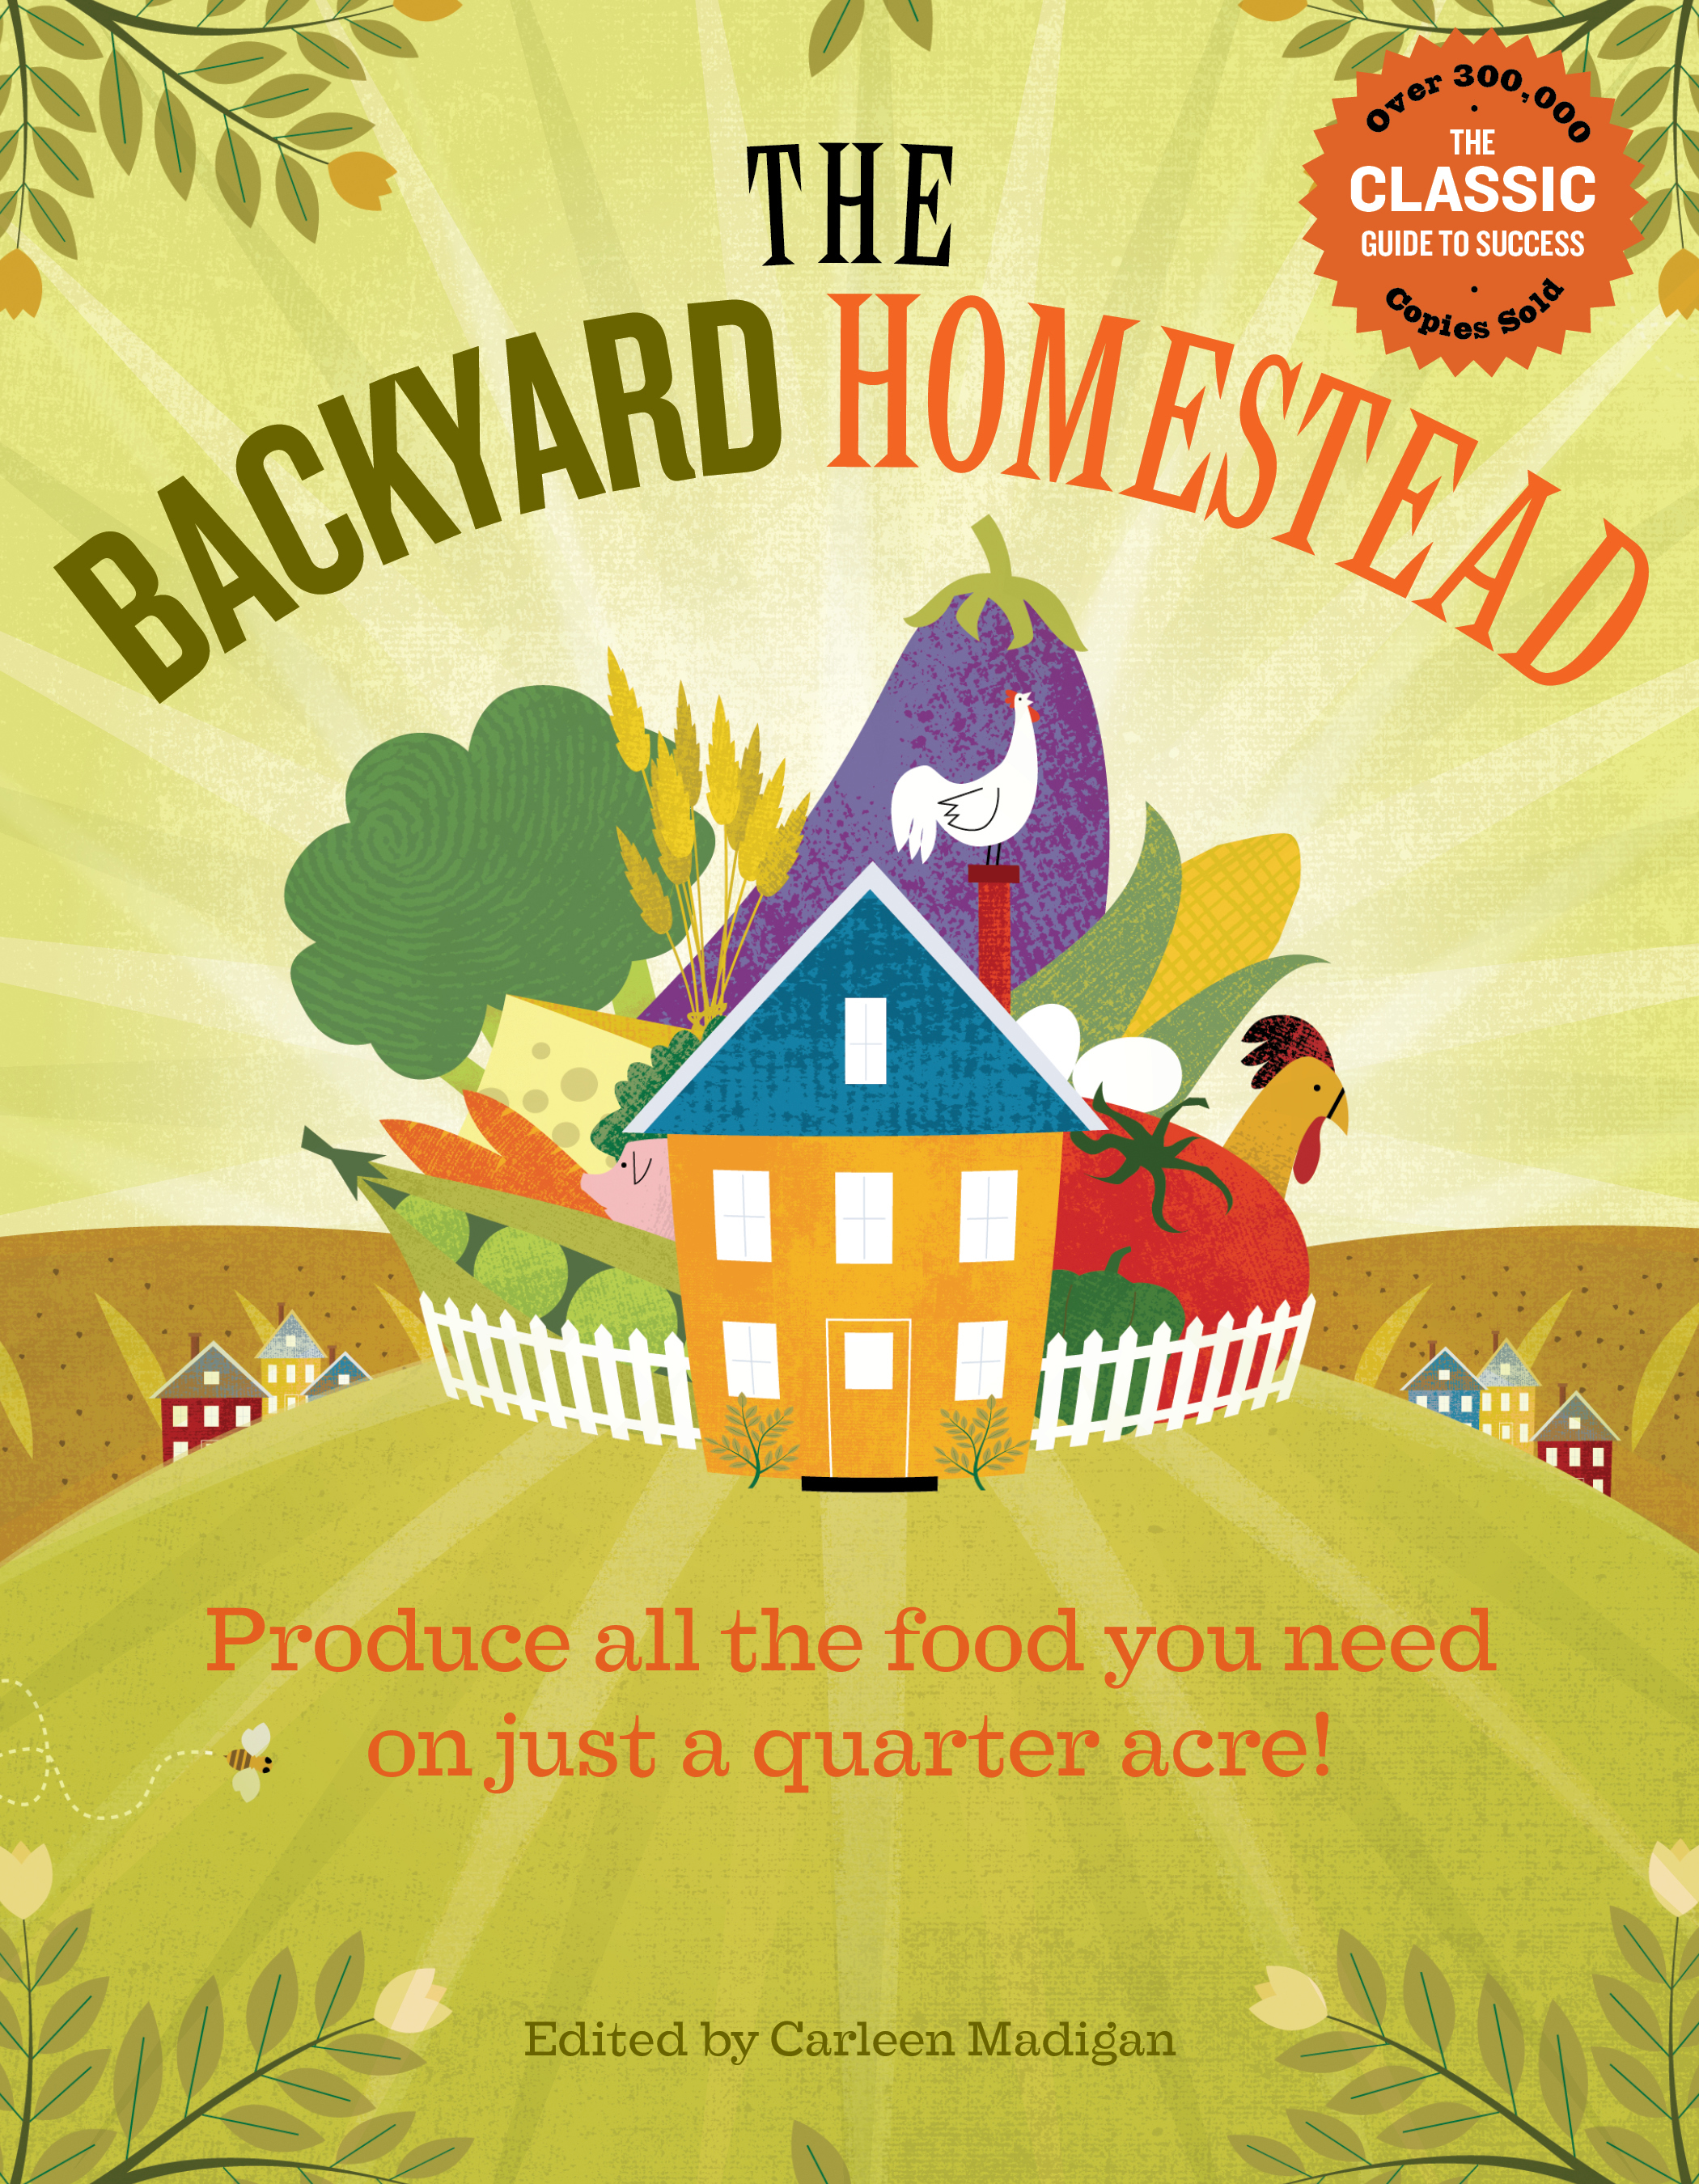 The Backyard Homestead Produce all the food you need on just a quarter acre! - Carleen Madigan